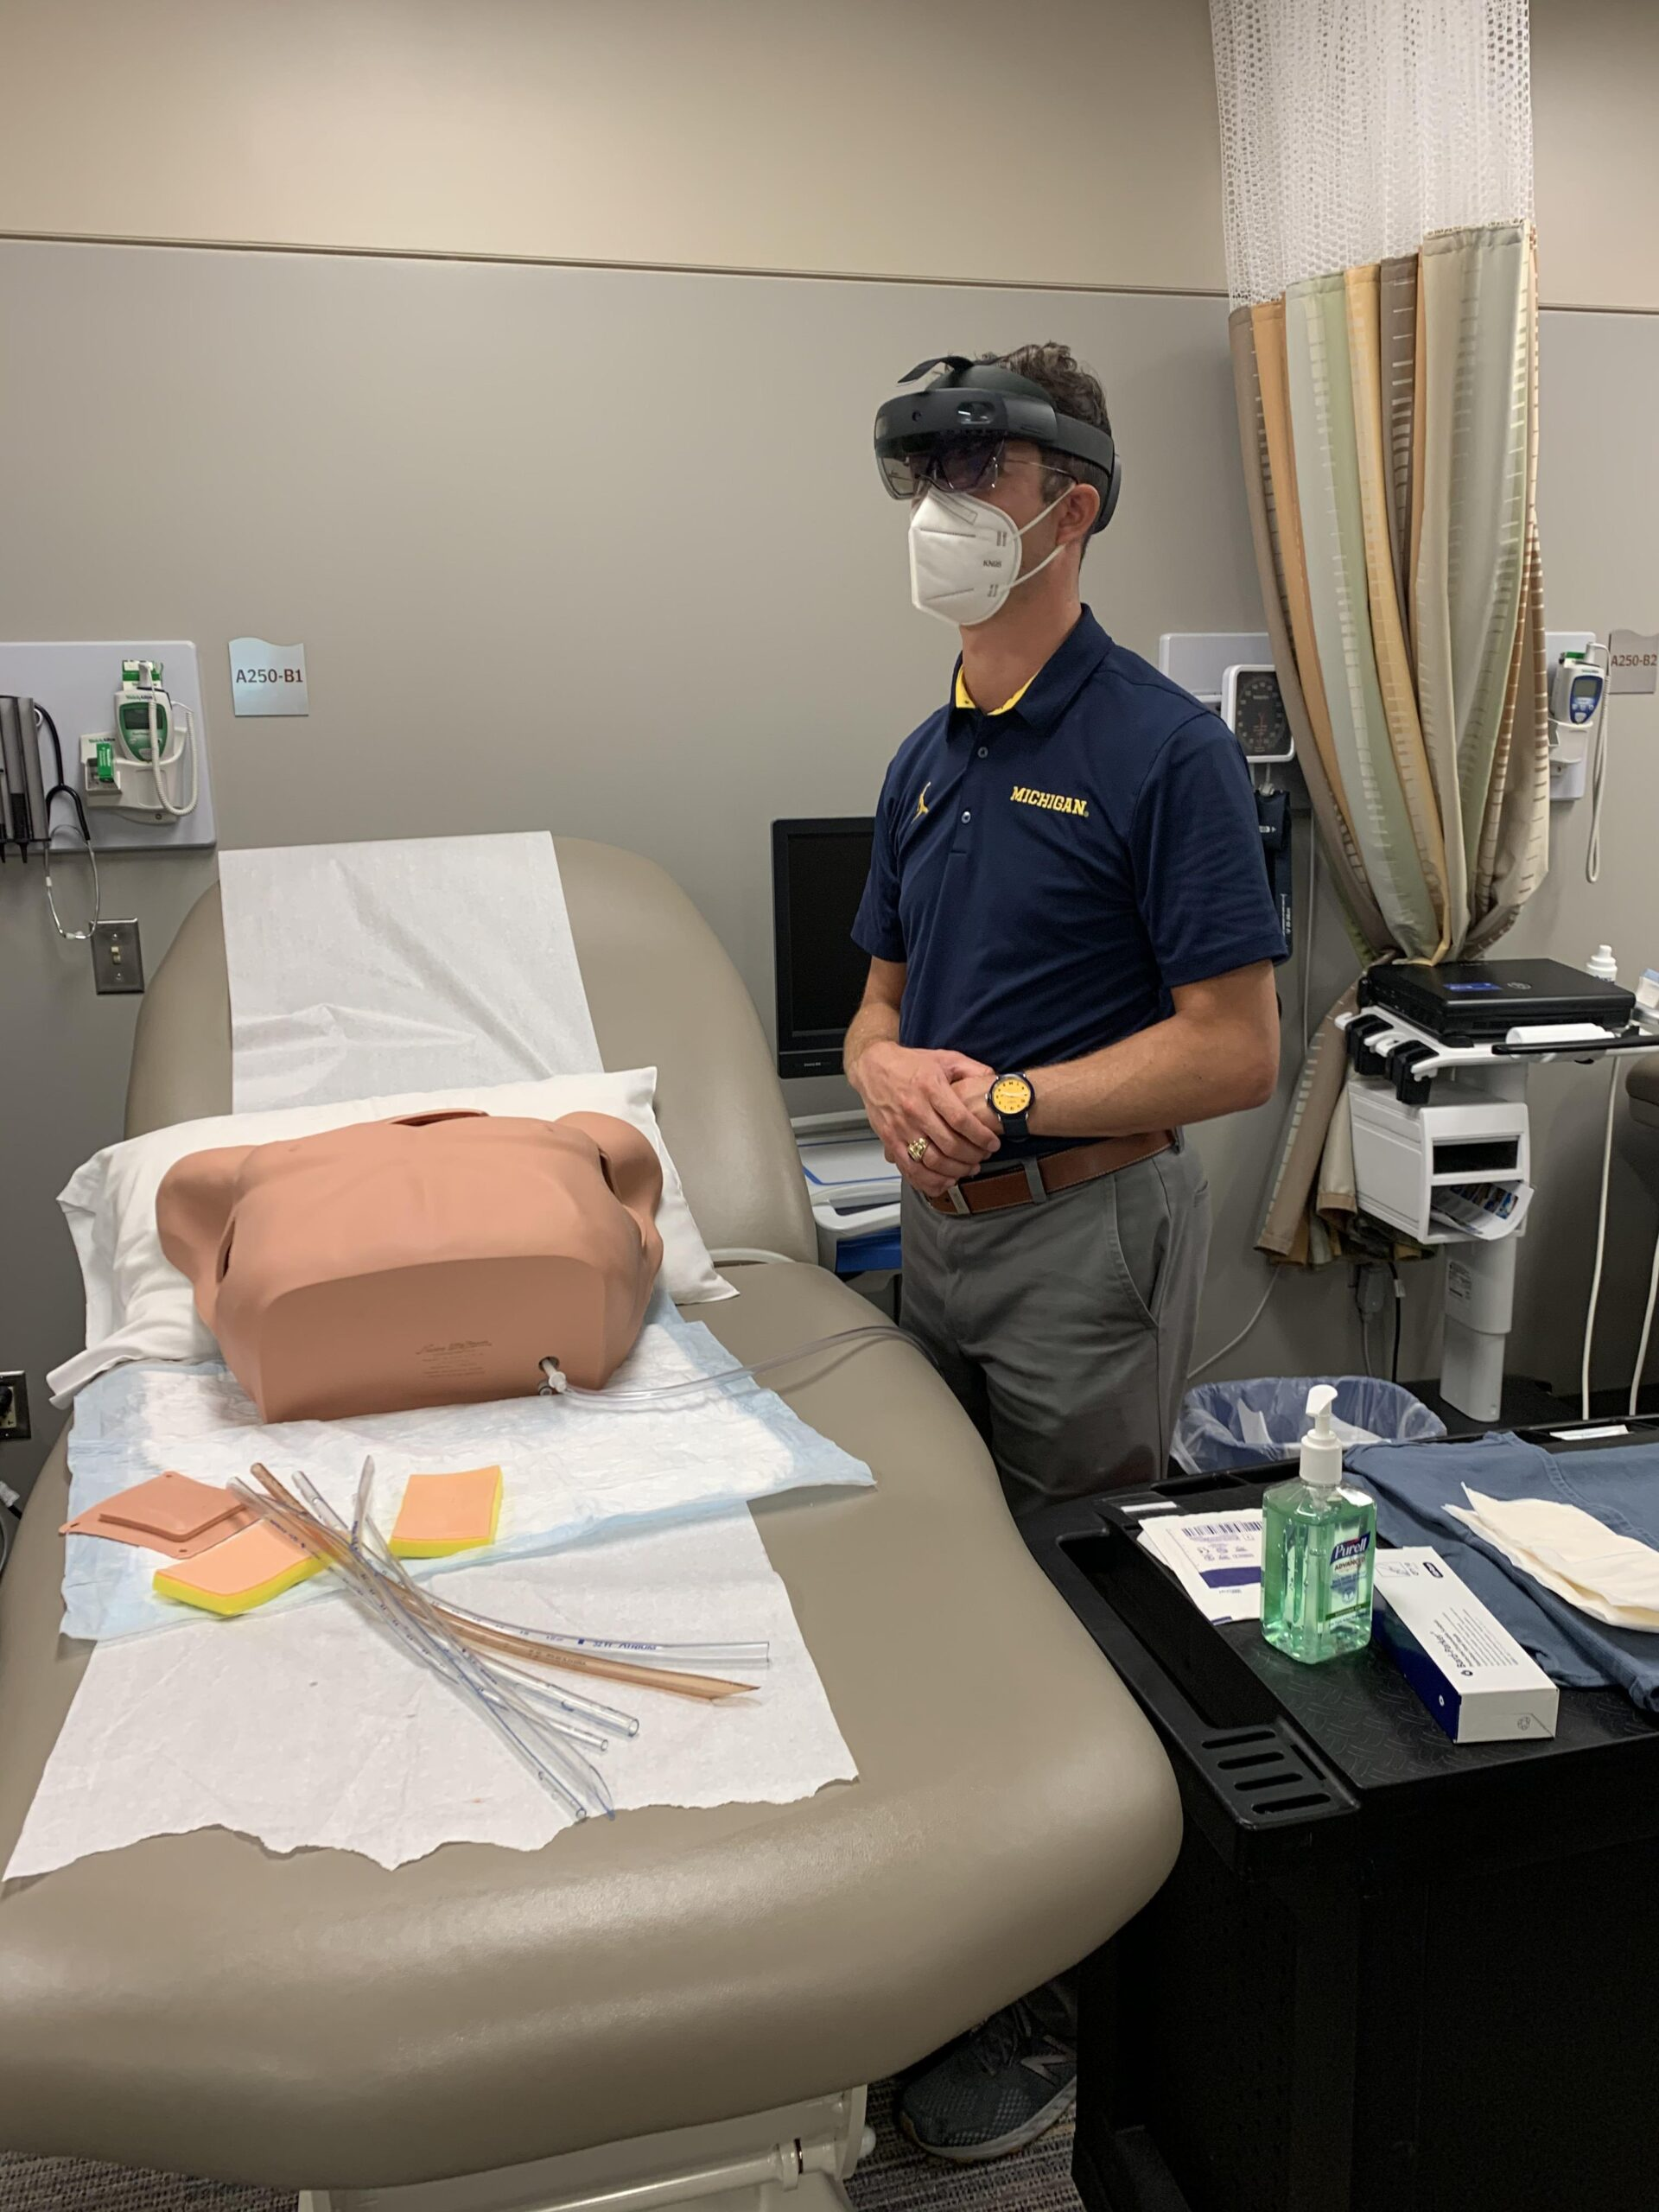 Brian Kaminski practicing a catheterization procedure using the HoloLens2. Image credit: U-M School of Nursing